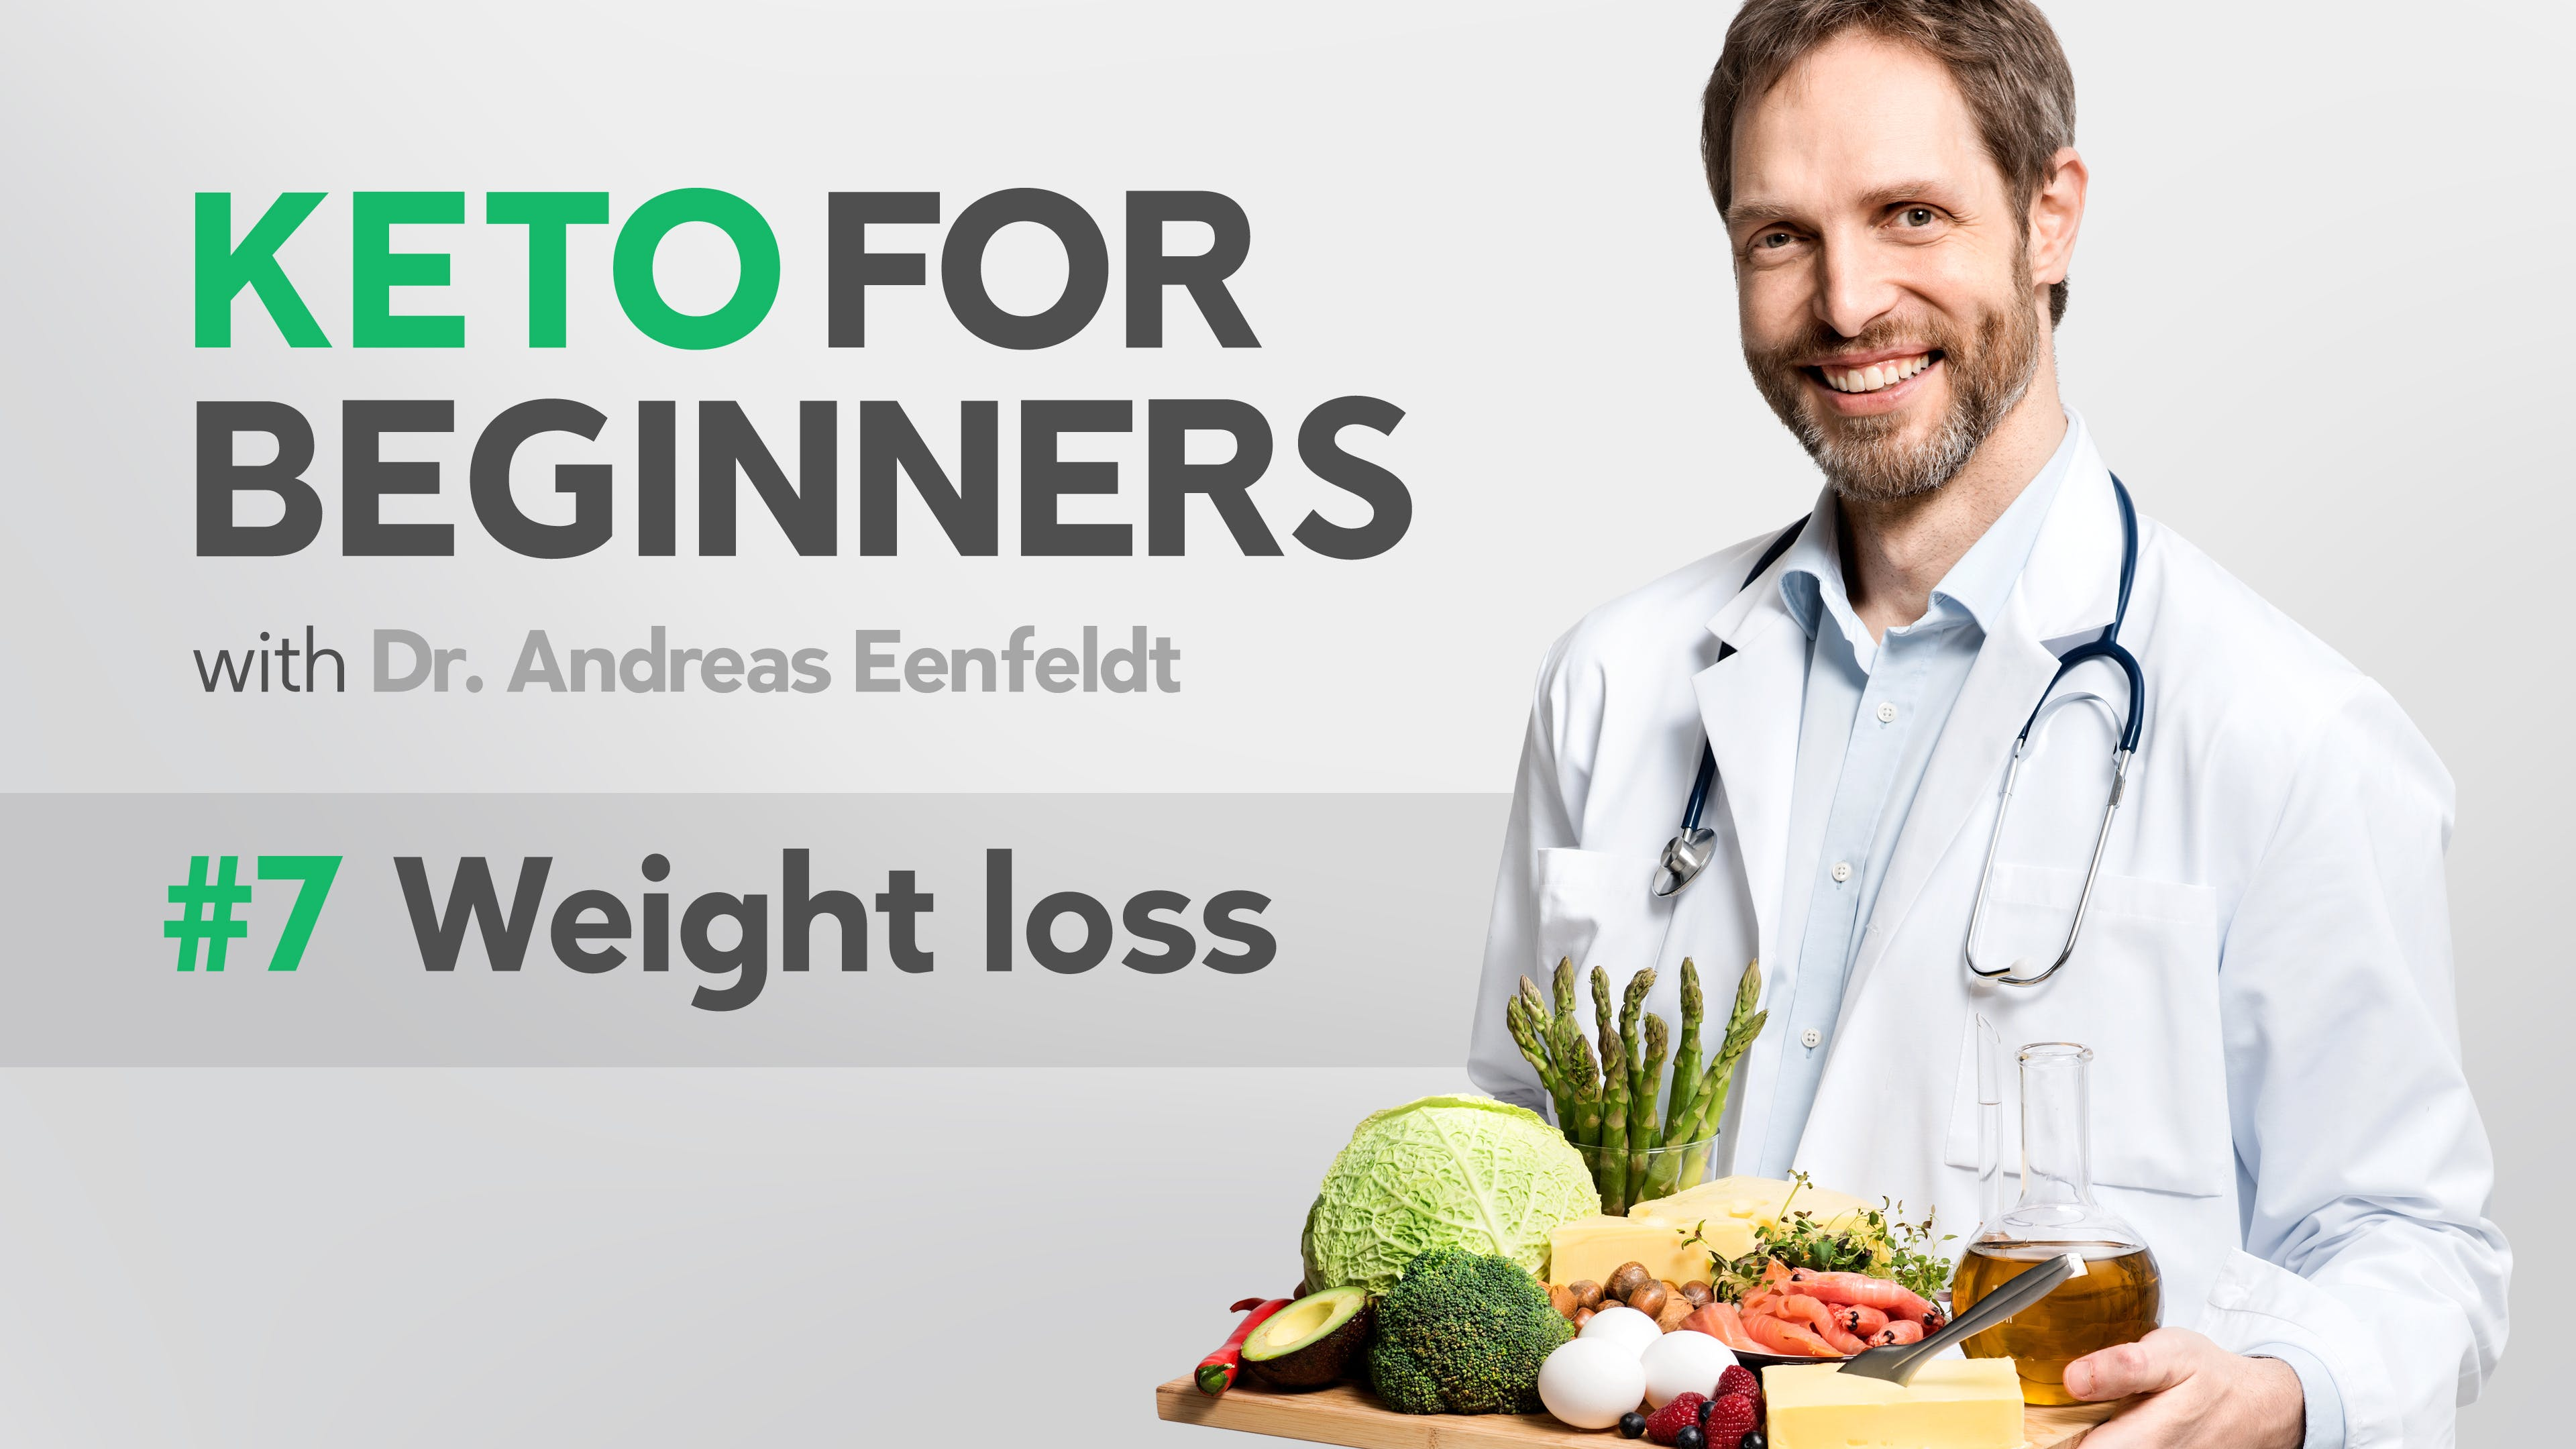 How do you lose weight on a keto diet?